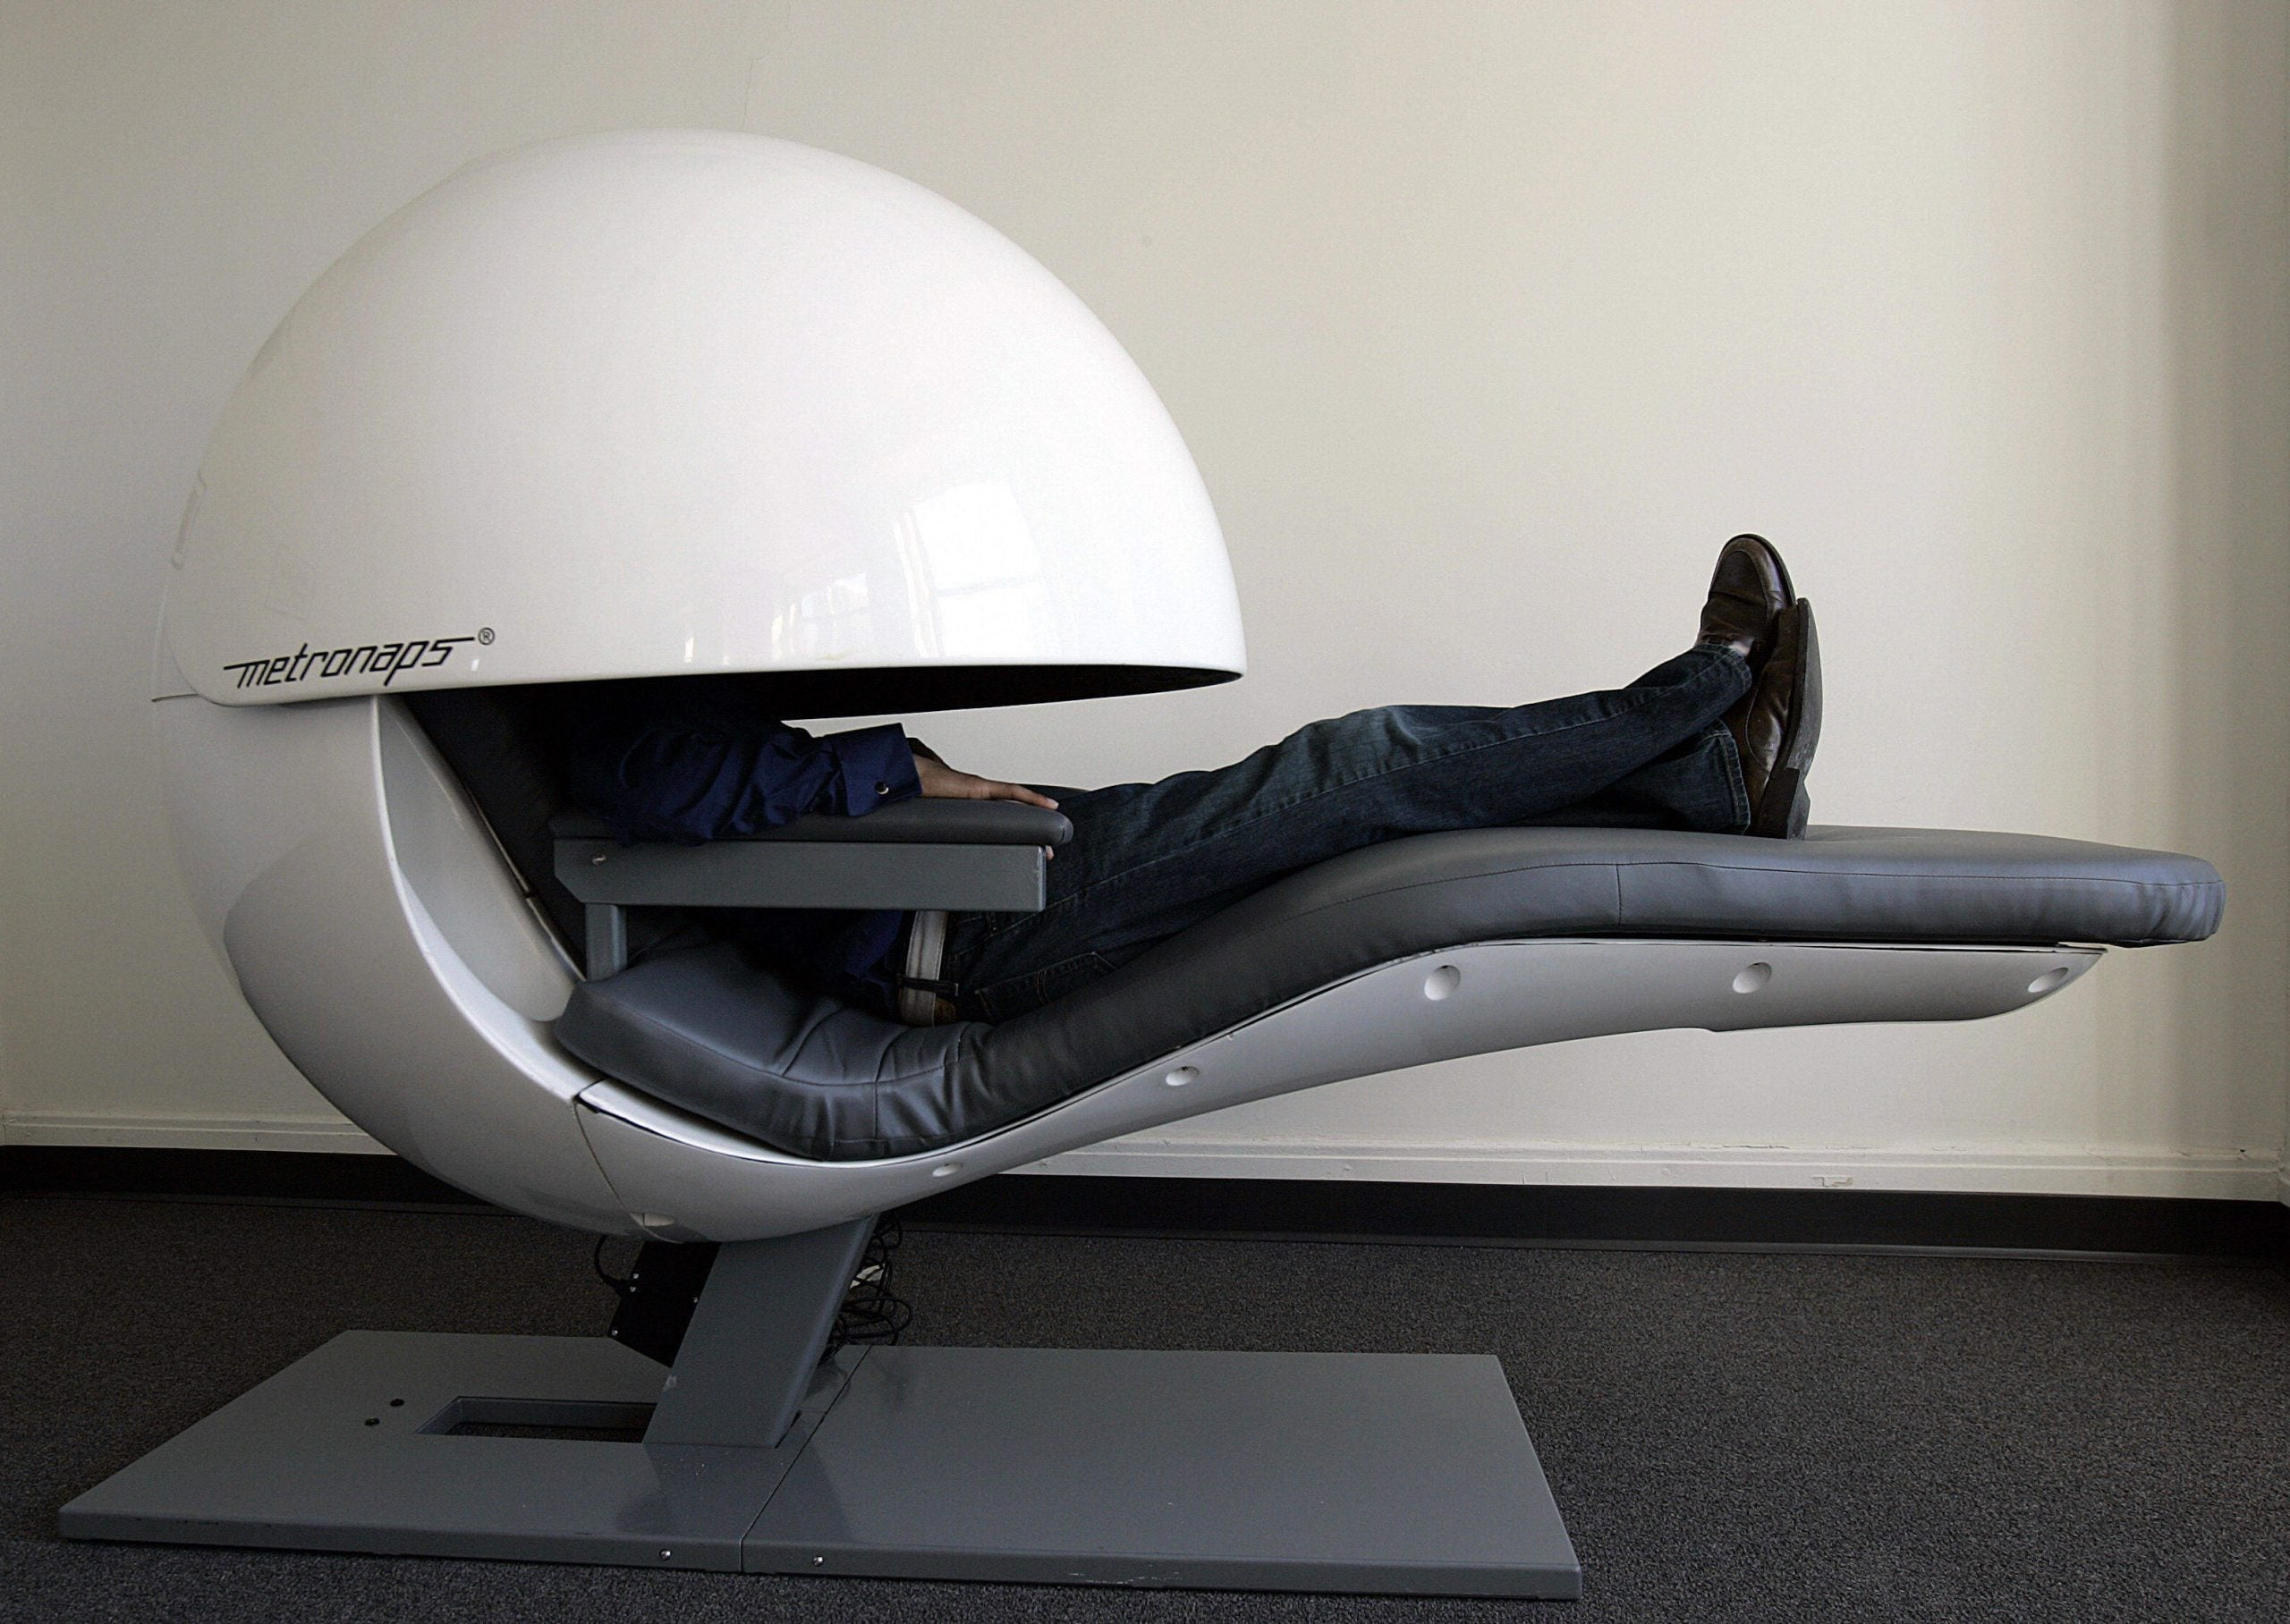 Nap pods: unproductive gimmick, or a lifeline for increasingly sleep-deprived workers?